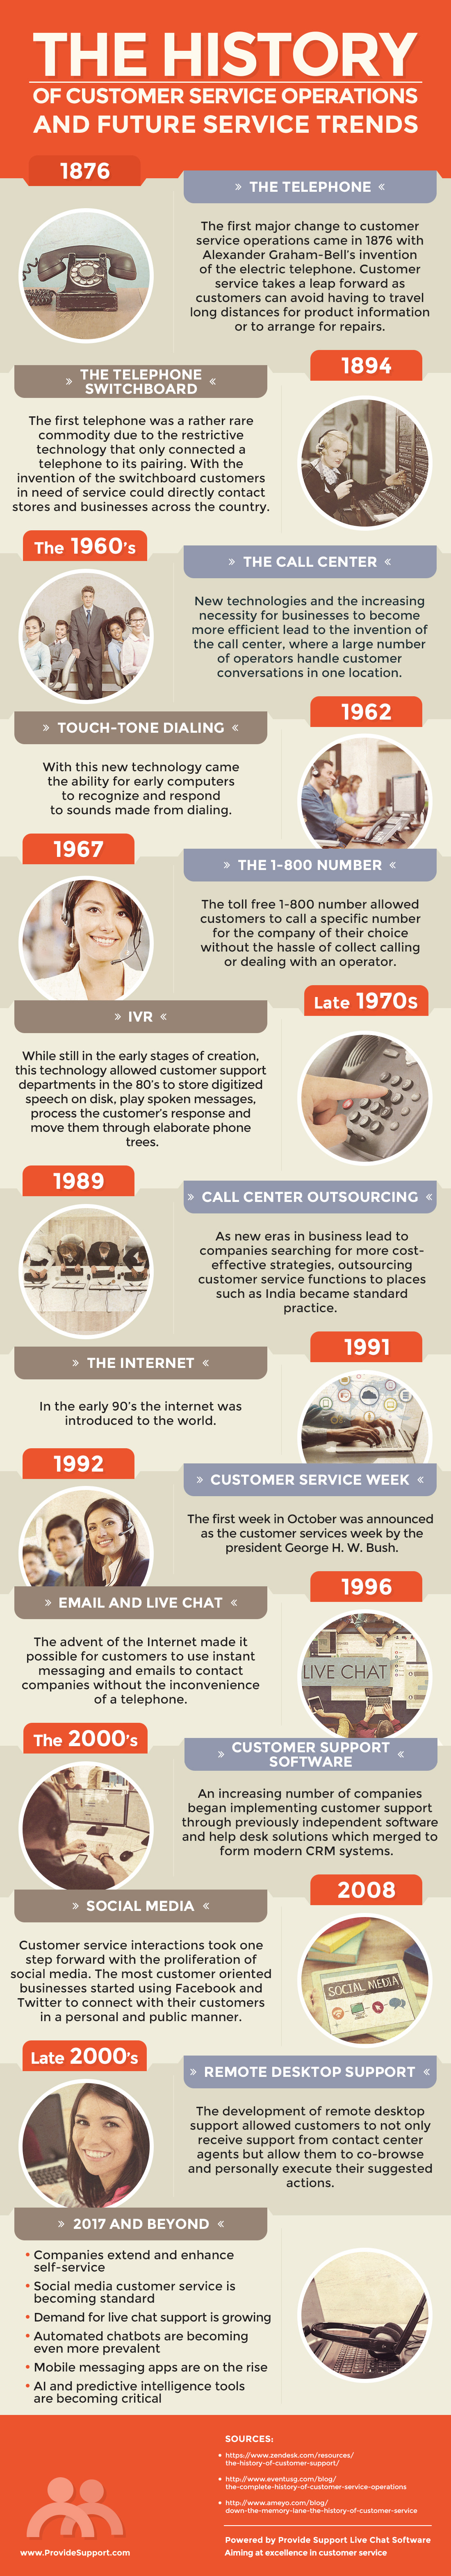 The History of Customer Service and Future Service Trends